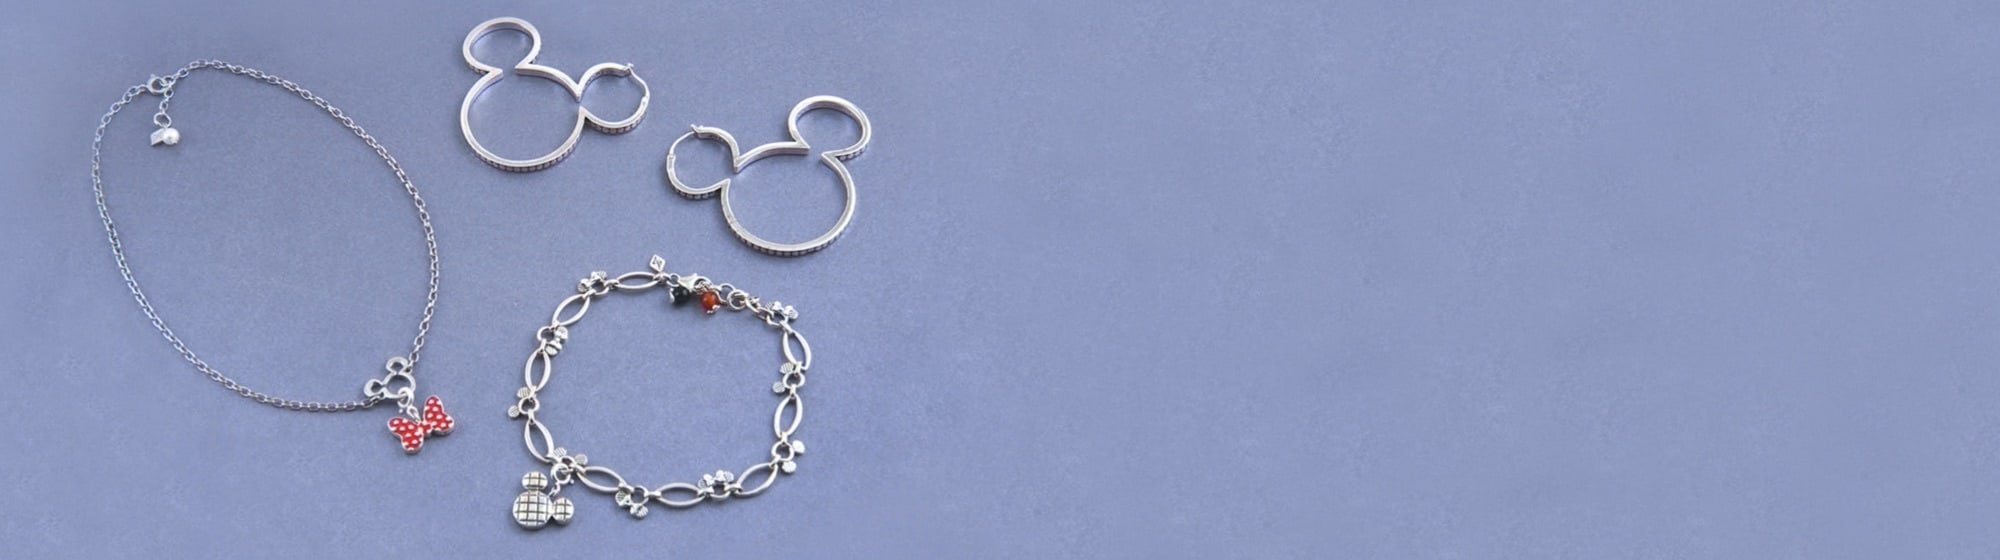 Magical charms from your favourite Disney characters | Shop Now at Fourseven